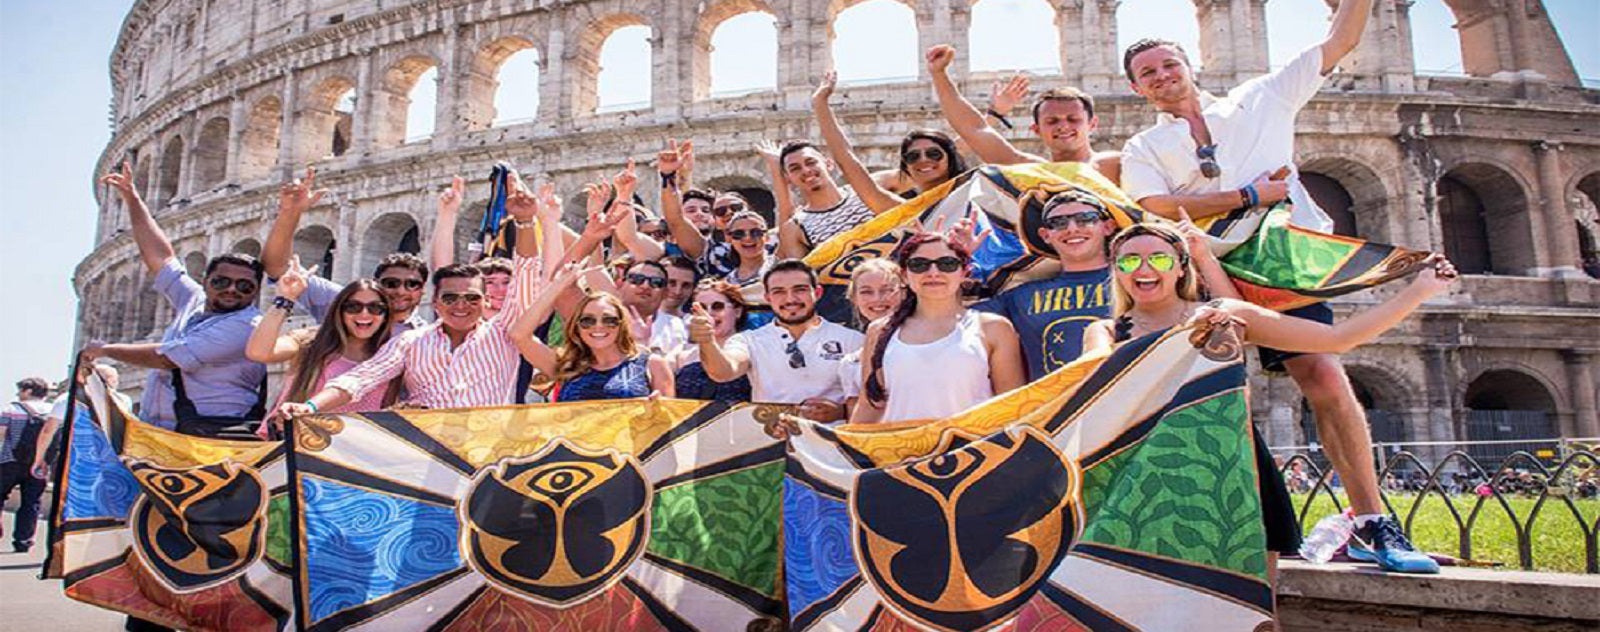 Drapeaux Tomorrowland à Rome